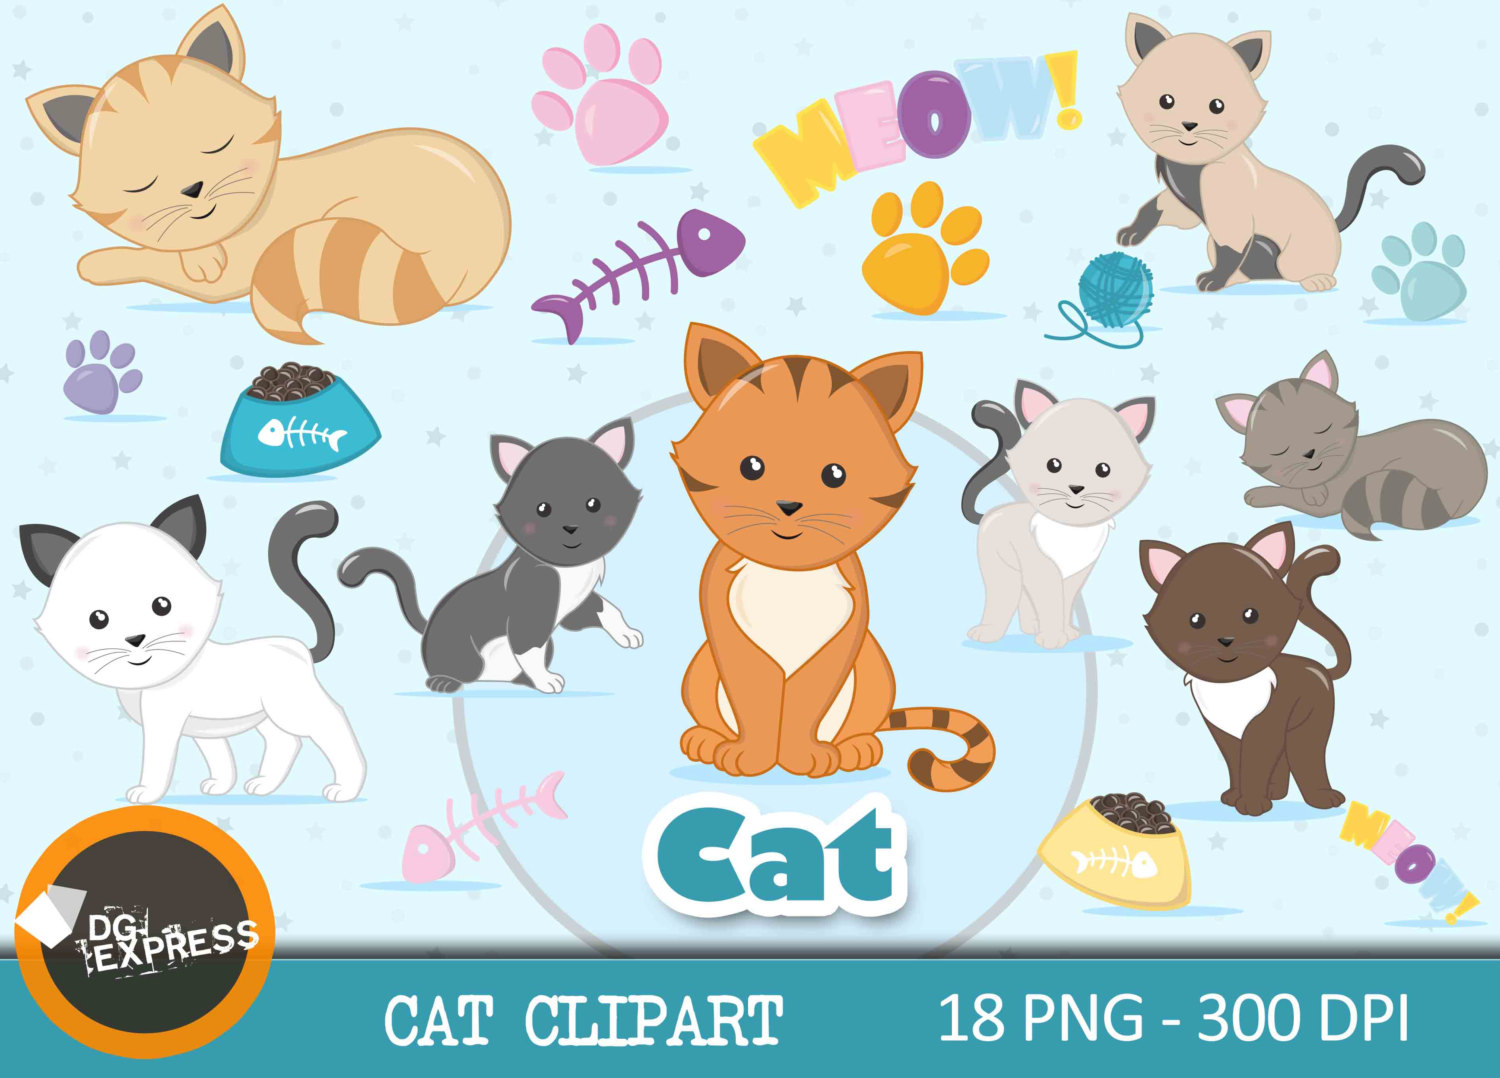 Feline clipart #11, Download drawings